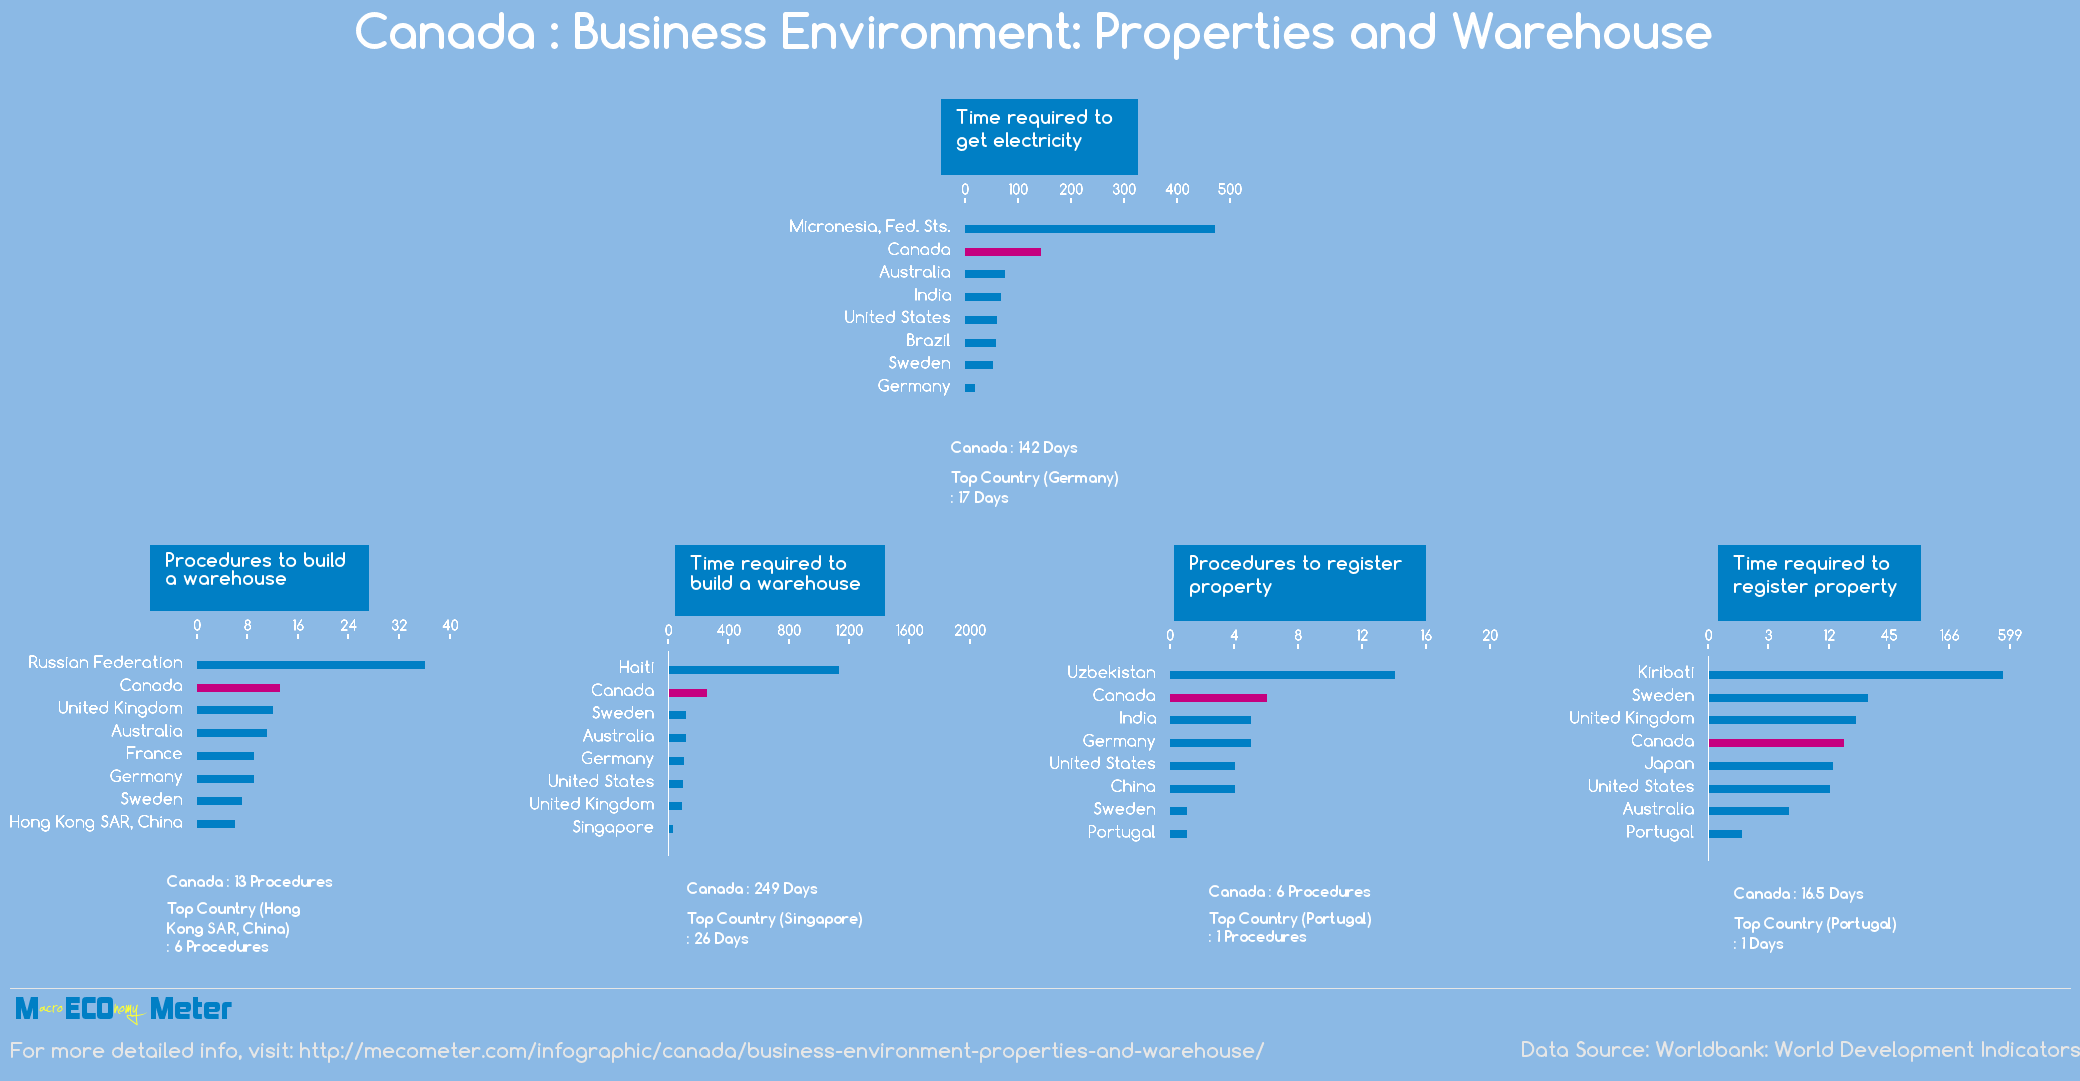 Canada : Business Environment: Properties and Warehouse